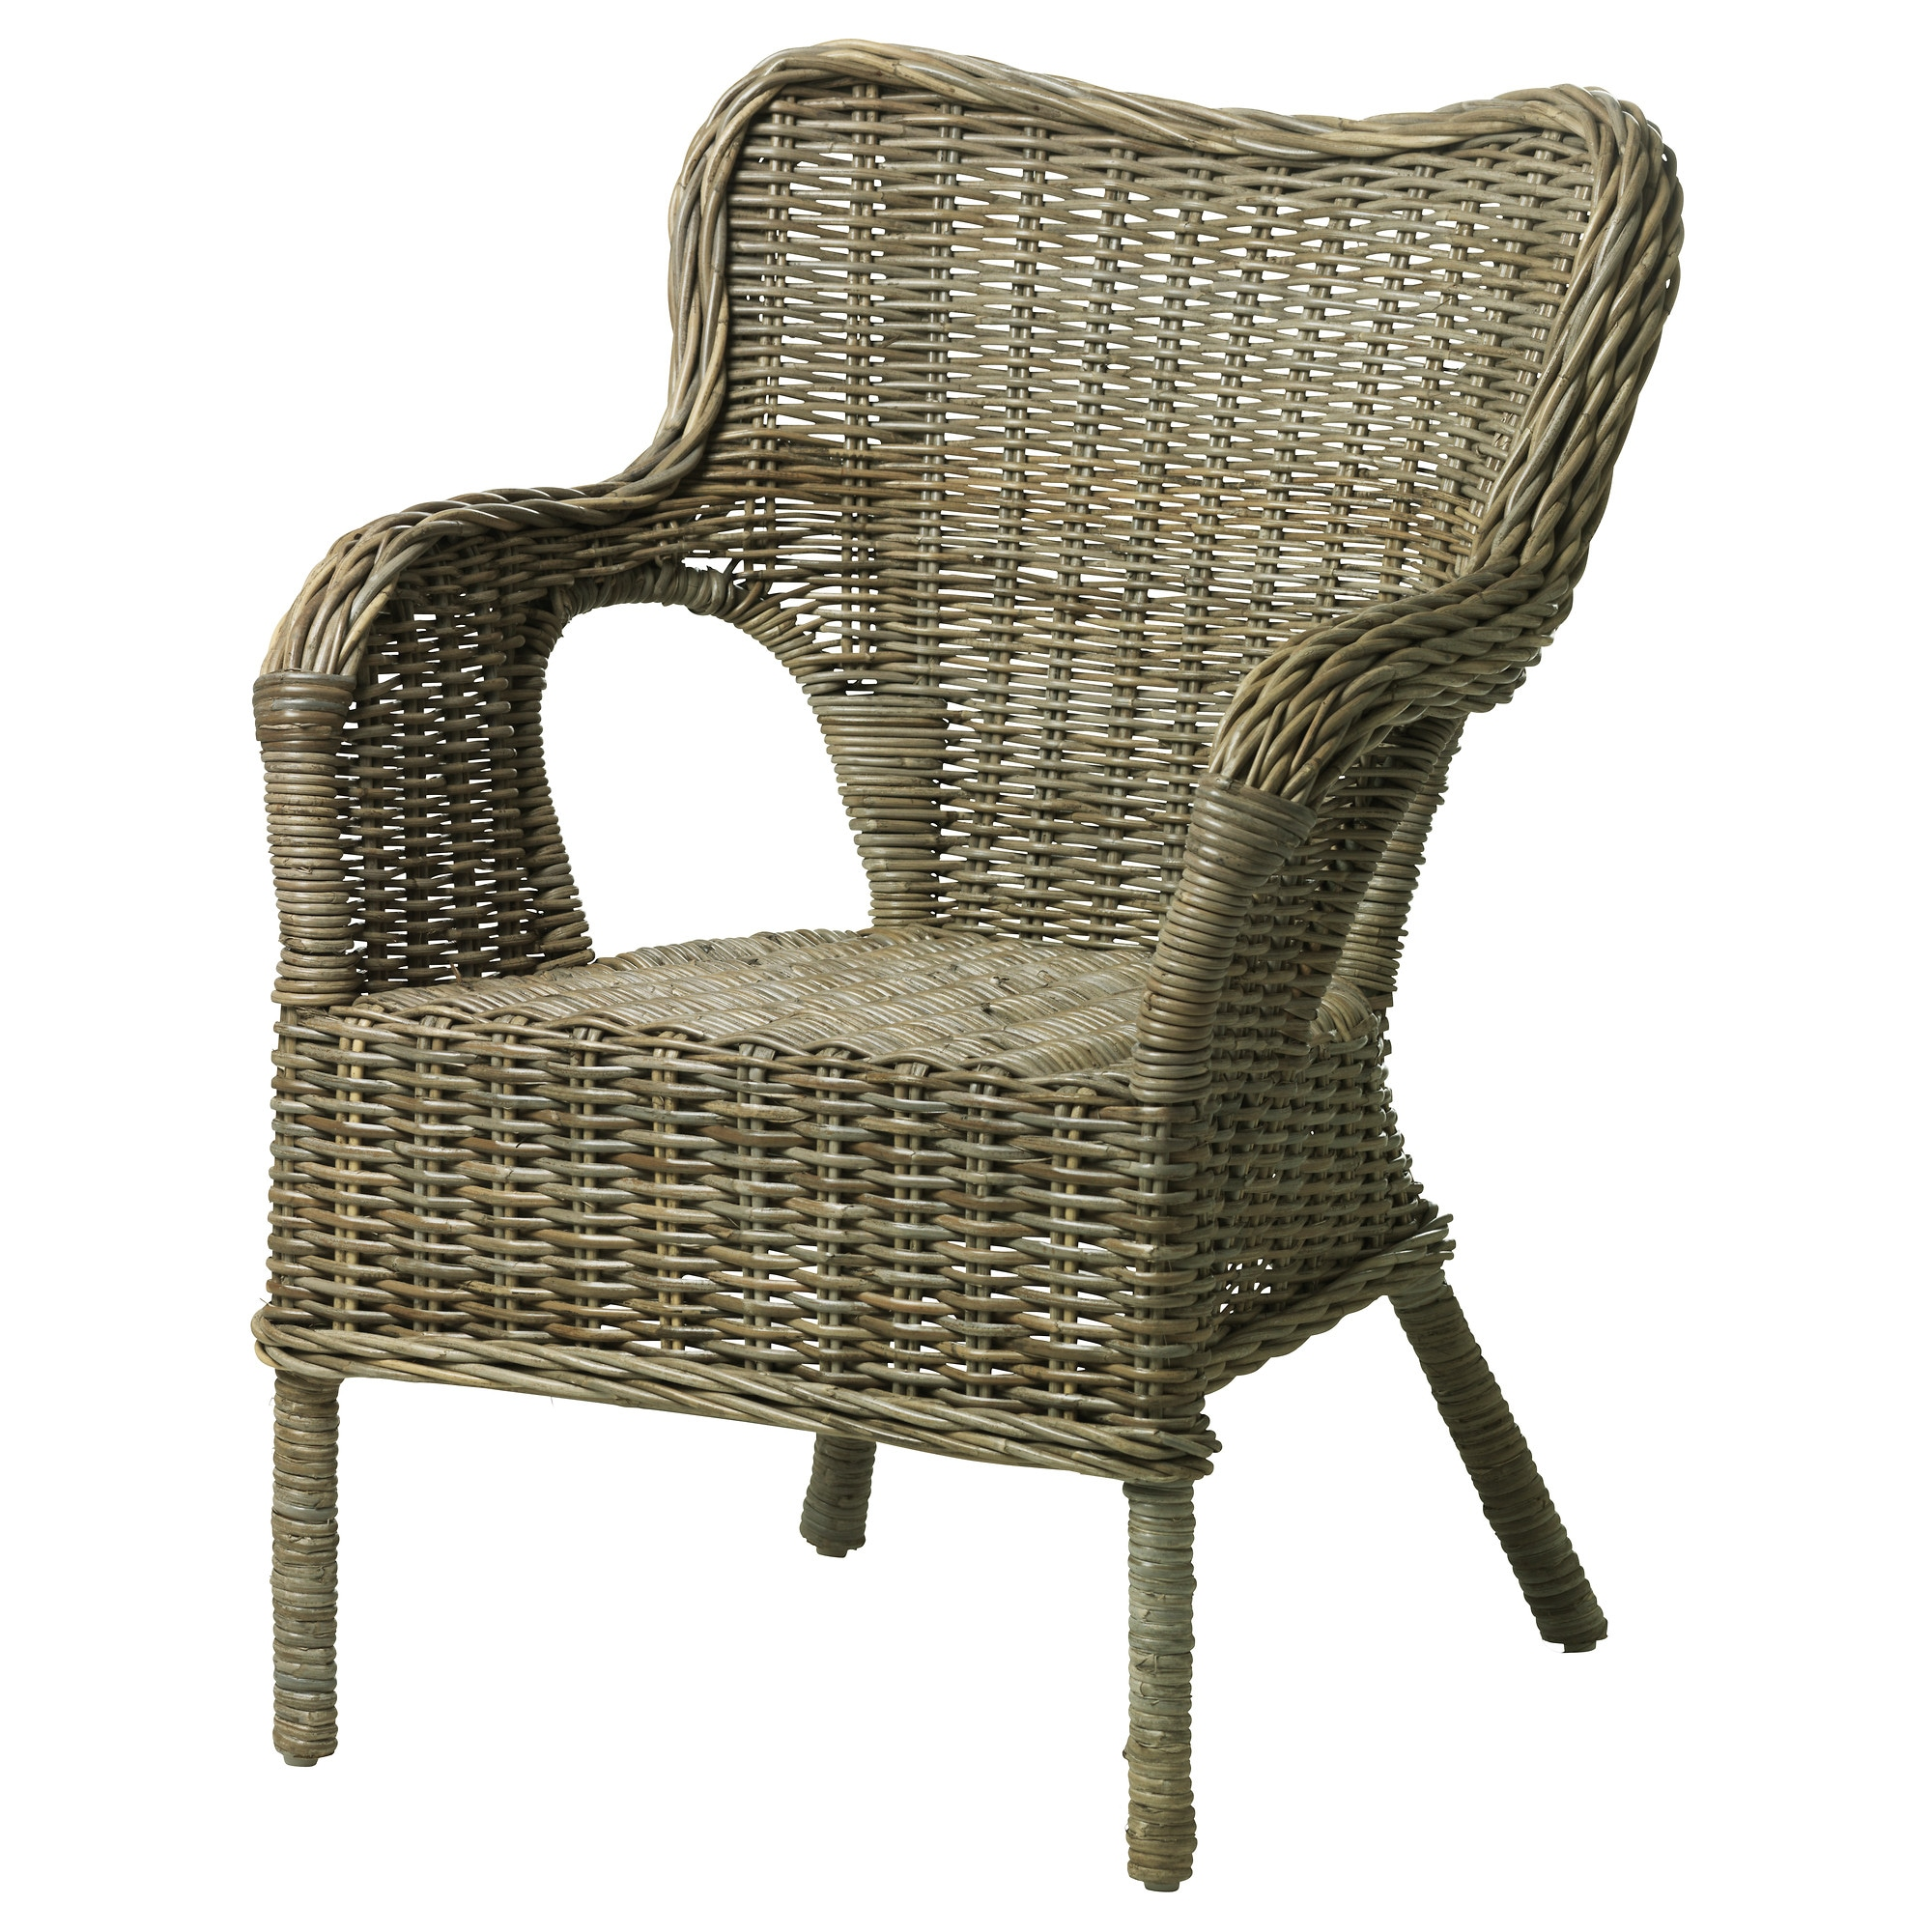 Rattan And Wicker Furniture #16: BYHOLMA Chair, Gray Width: 26 3/4 U0026quot; Depth: 28 3/